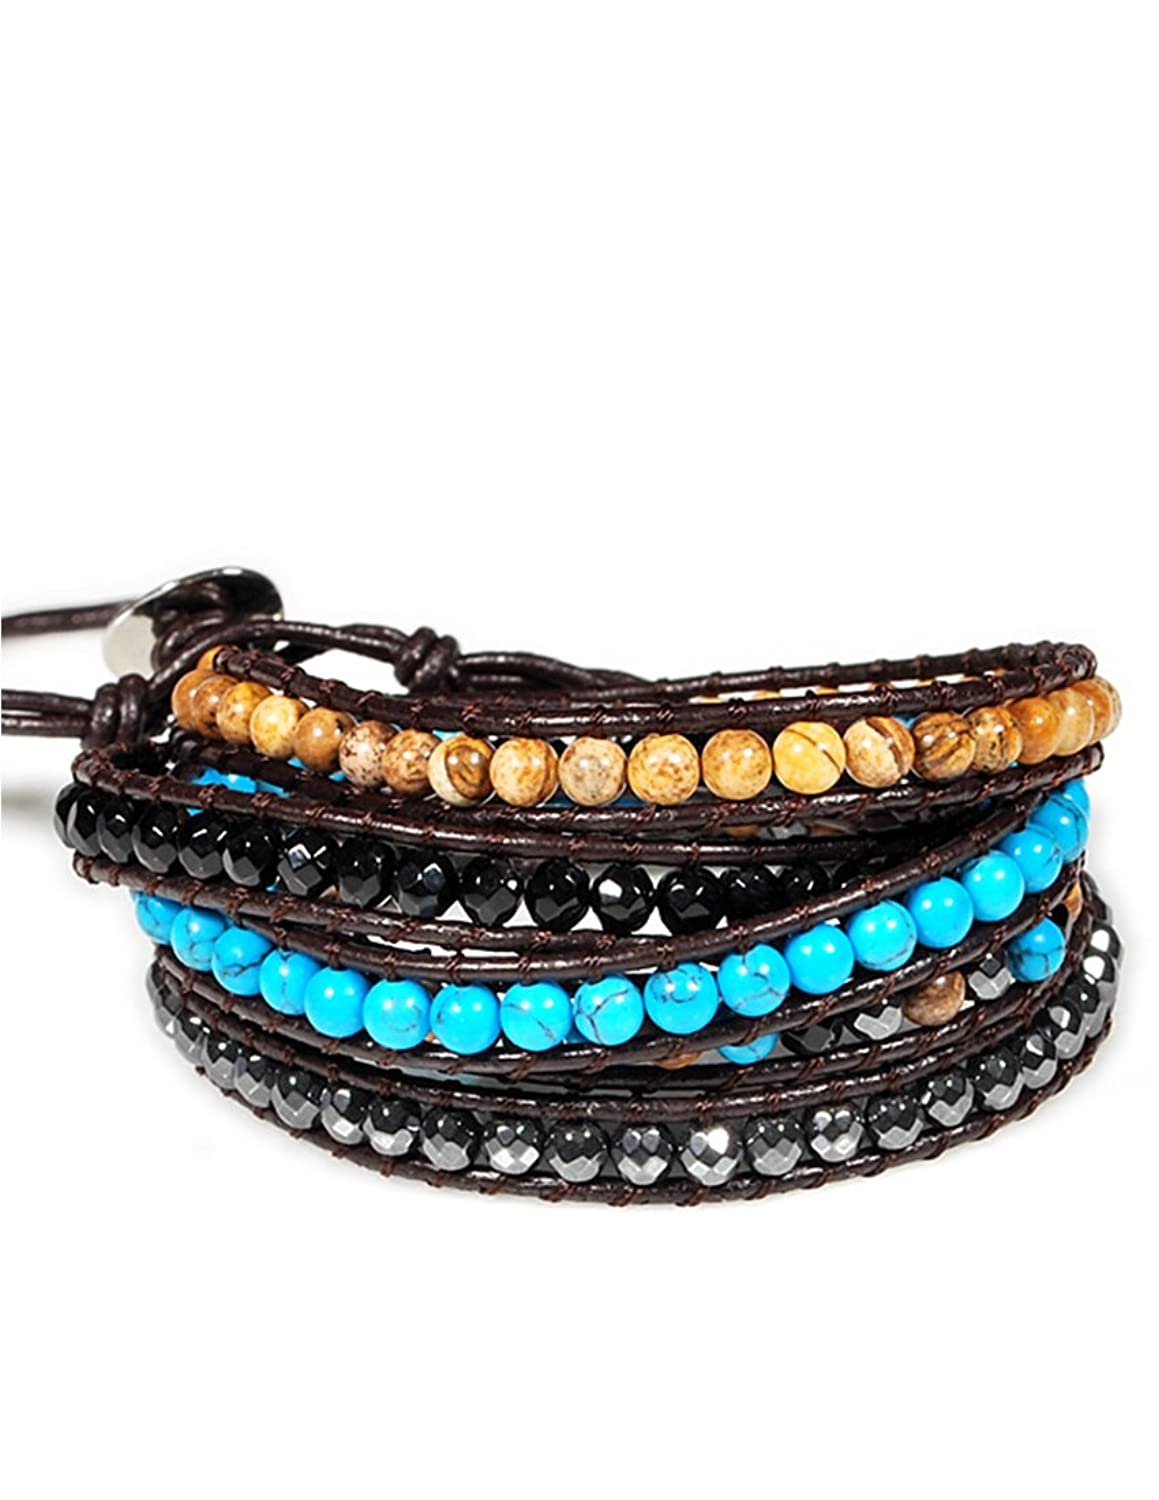 EUDORA Cool Nature Agate Leather Wrap Crystal Beads Bracelet Mix Color for Women Man